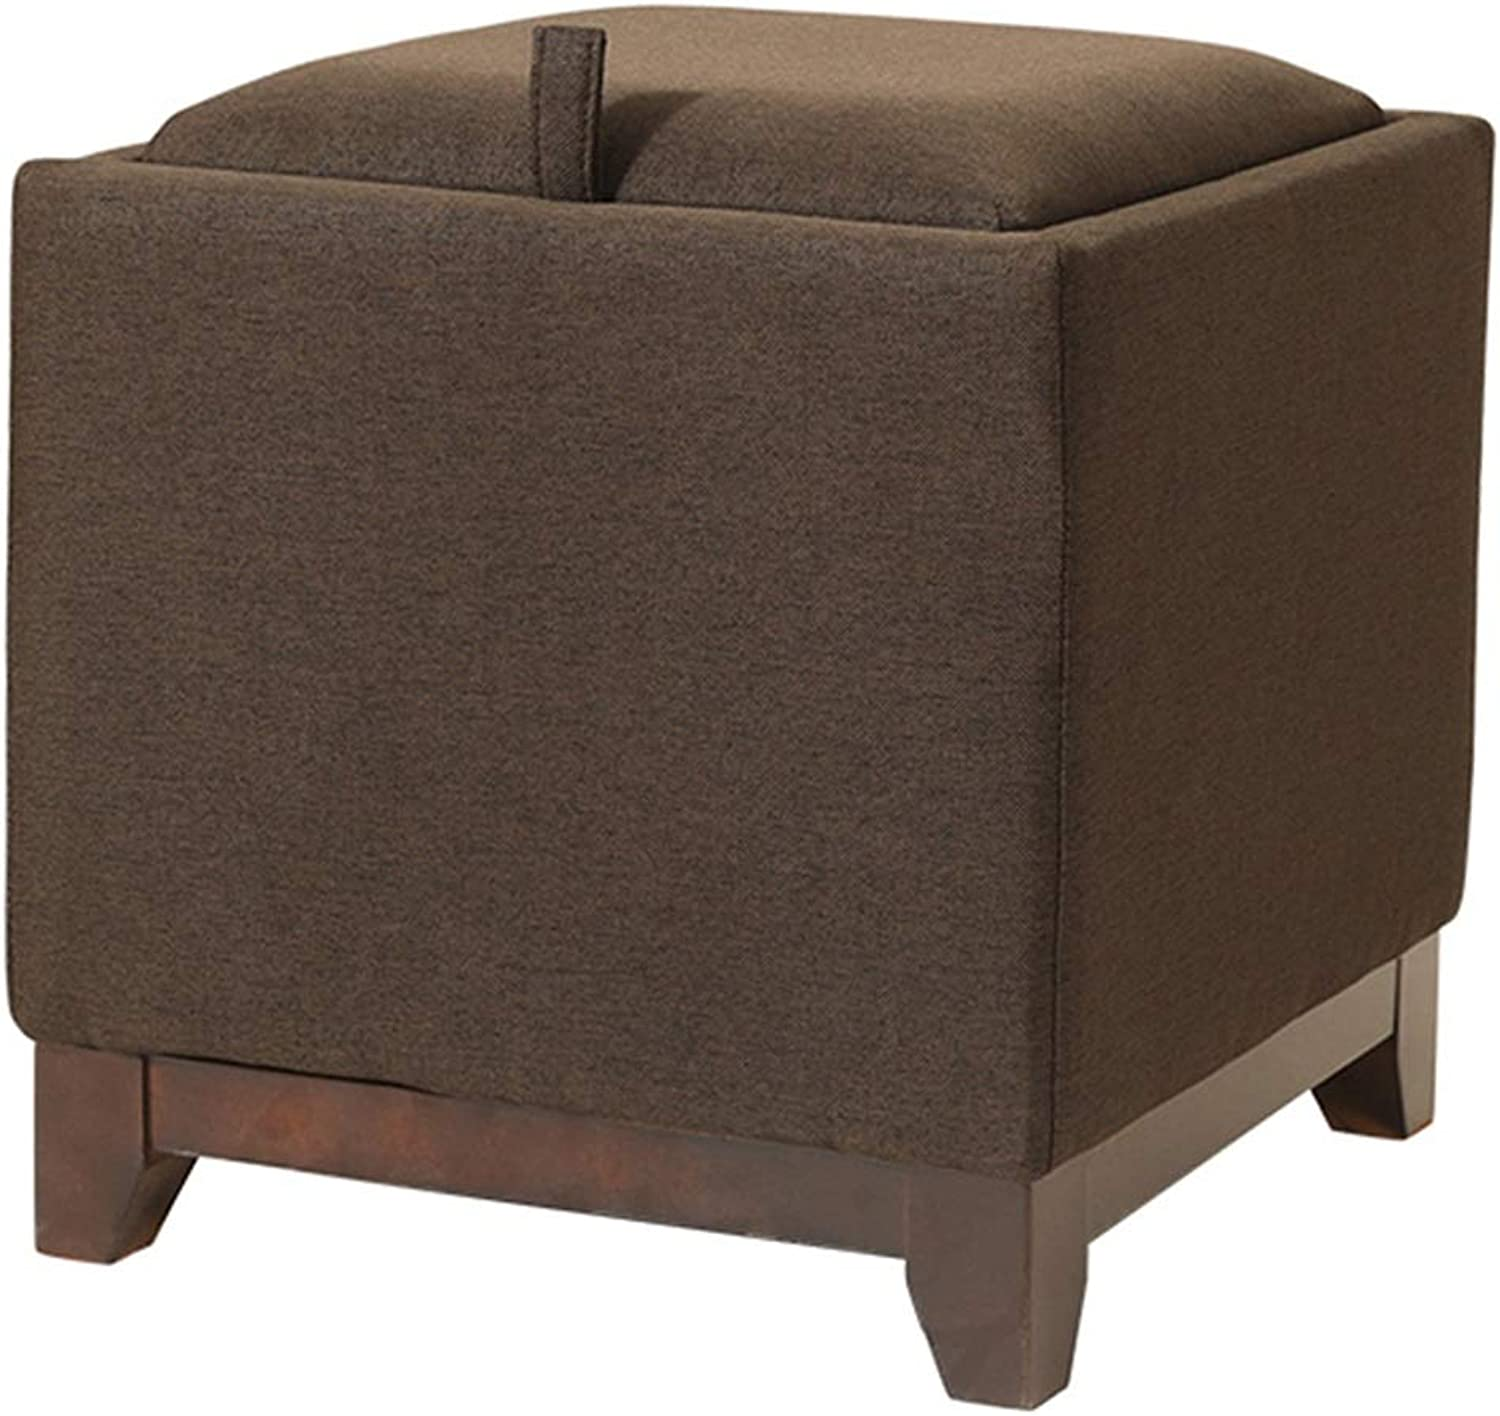 LSXIAO Pouffes And Footstools 4 Feet Solid Wood Frame Strong Load Bearing Capacity Multifunction Storage Stool, 5 colors (color   Brown, Size   40x40x40cm)